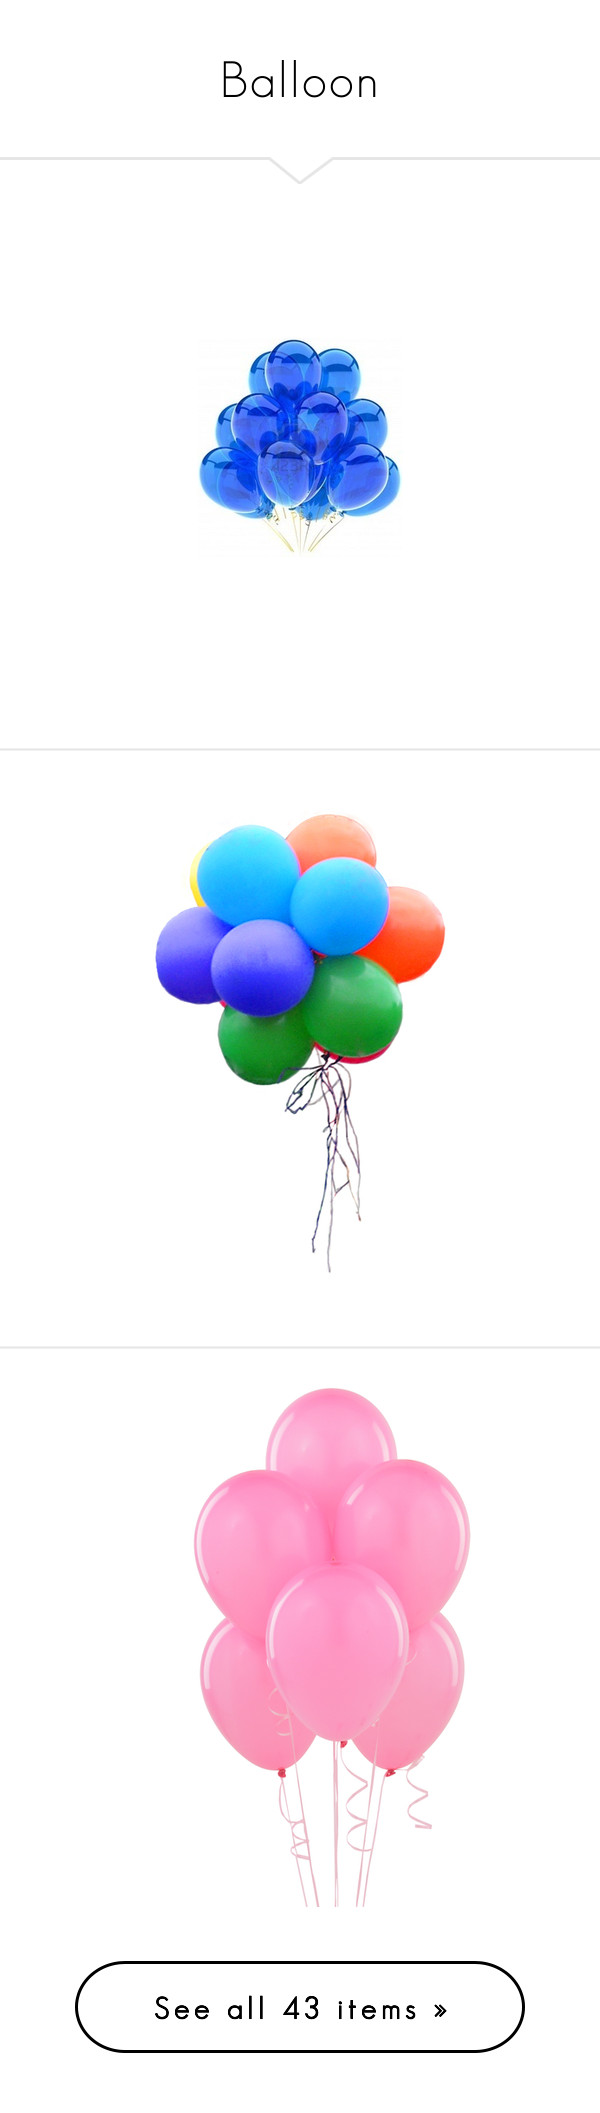 """""""Balloon"""" by bklana ❤ liked on Polyvore featuring balloons, blue, charity, decoration, fillers, birthday, backgrounds, accessories, filler and party"""